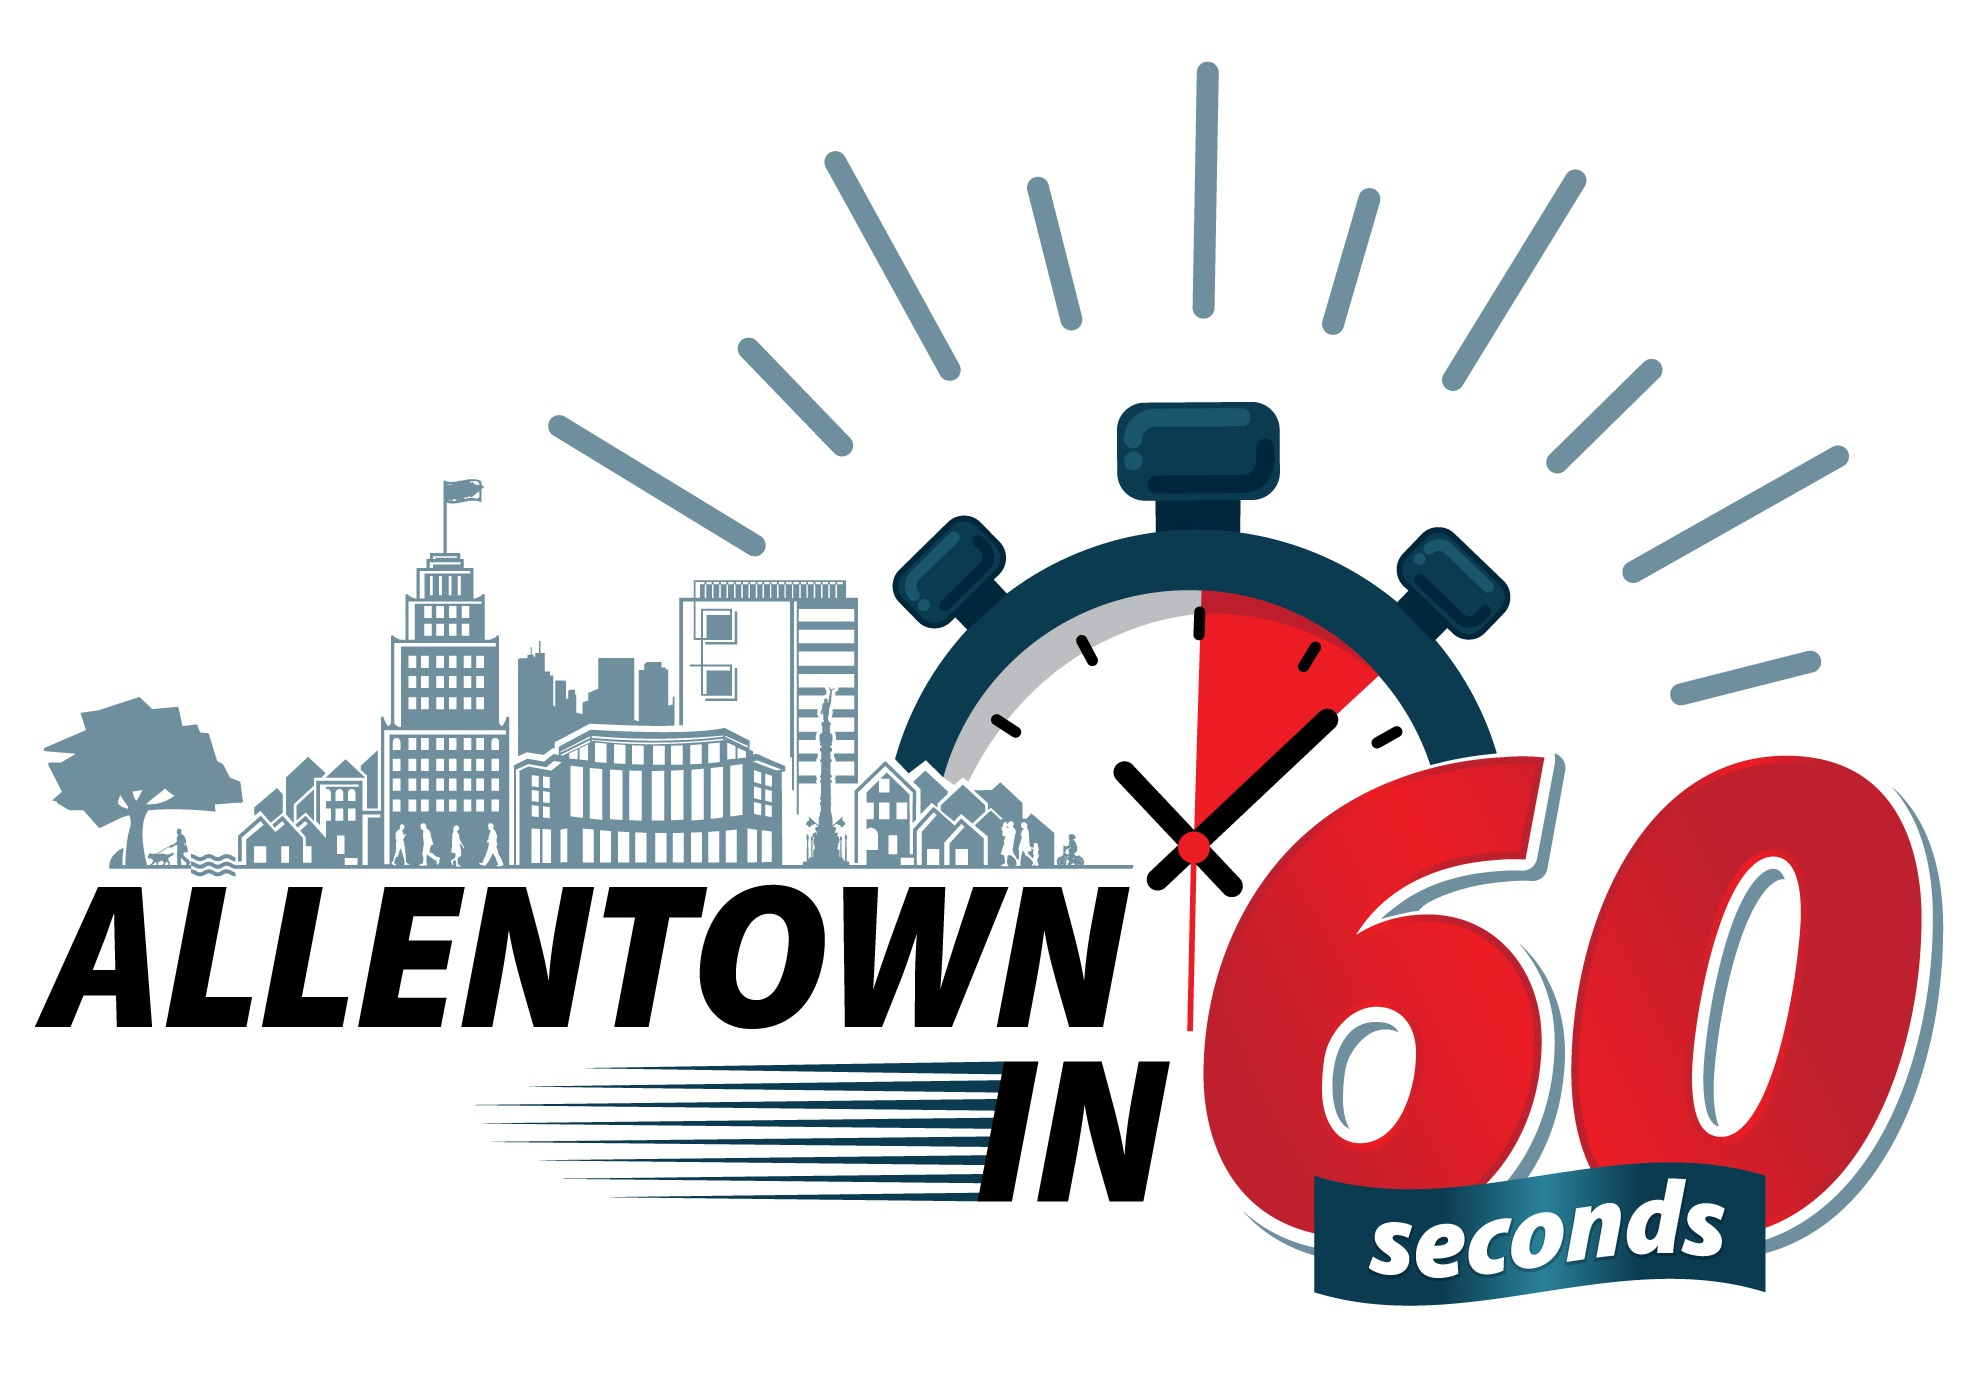 Click to go to the Allentown in 60 seconds website.